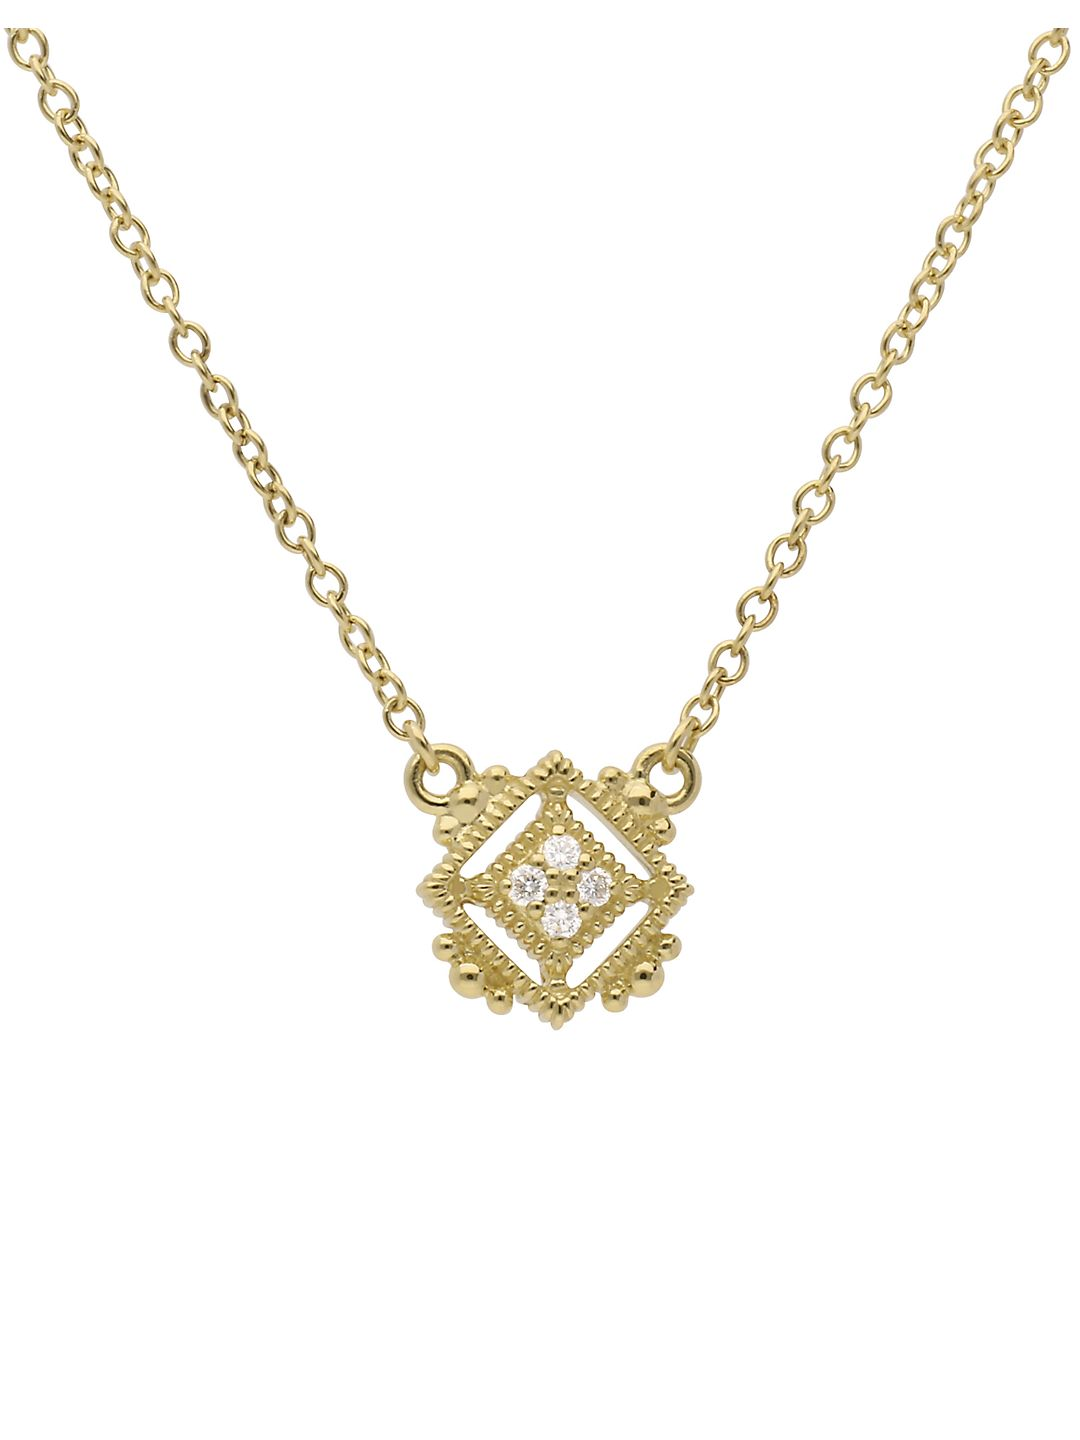 Juliette Pavé Diamond and 14K Yellow Gold Cube Pendant Necklace